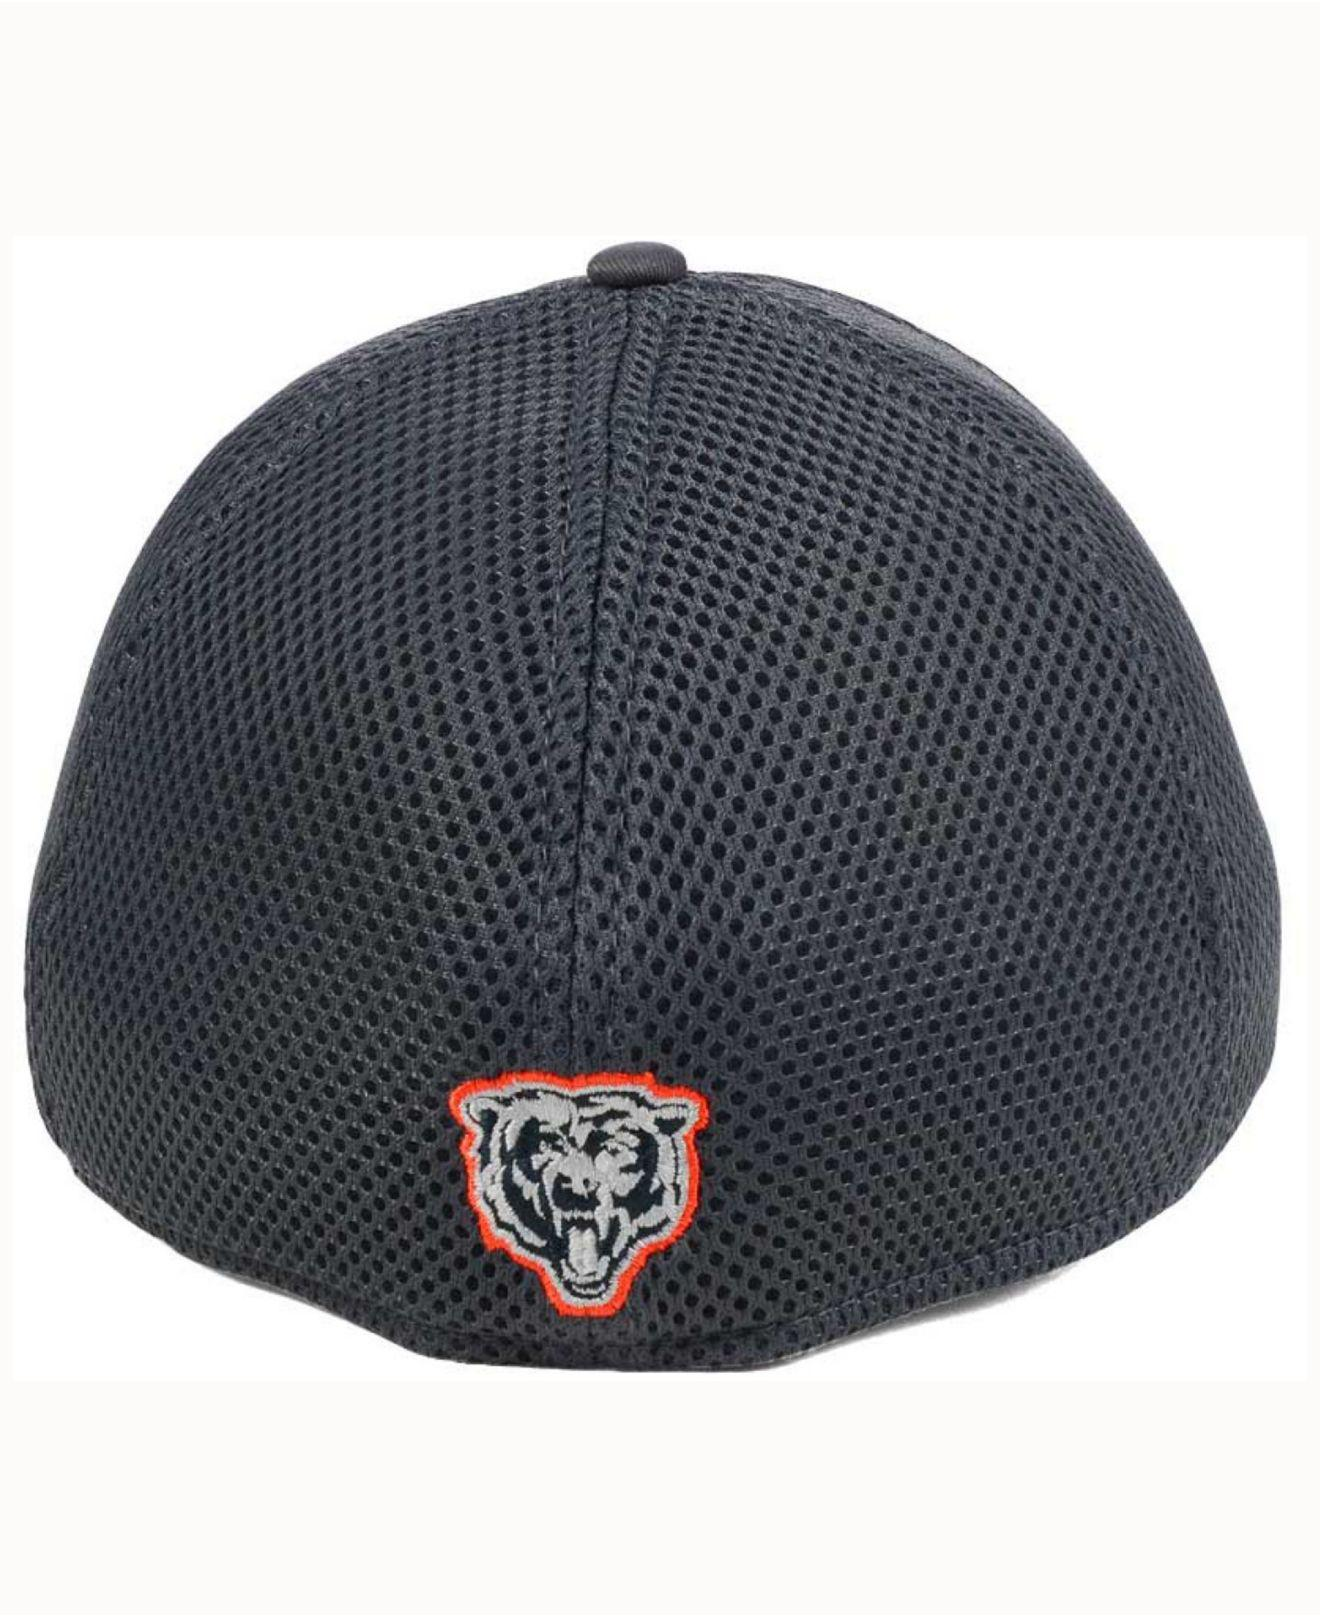 427777e7787a7 ... purchase lyst ktz chicago bears grayed out neo 39thirty cap in gray for  men 370d5 c3086